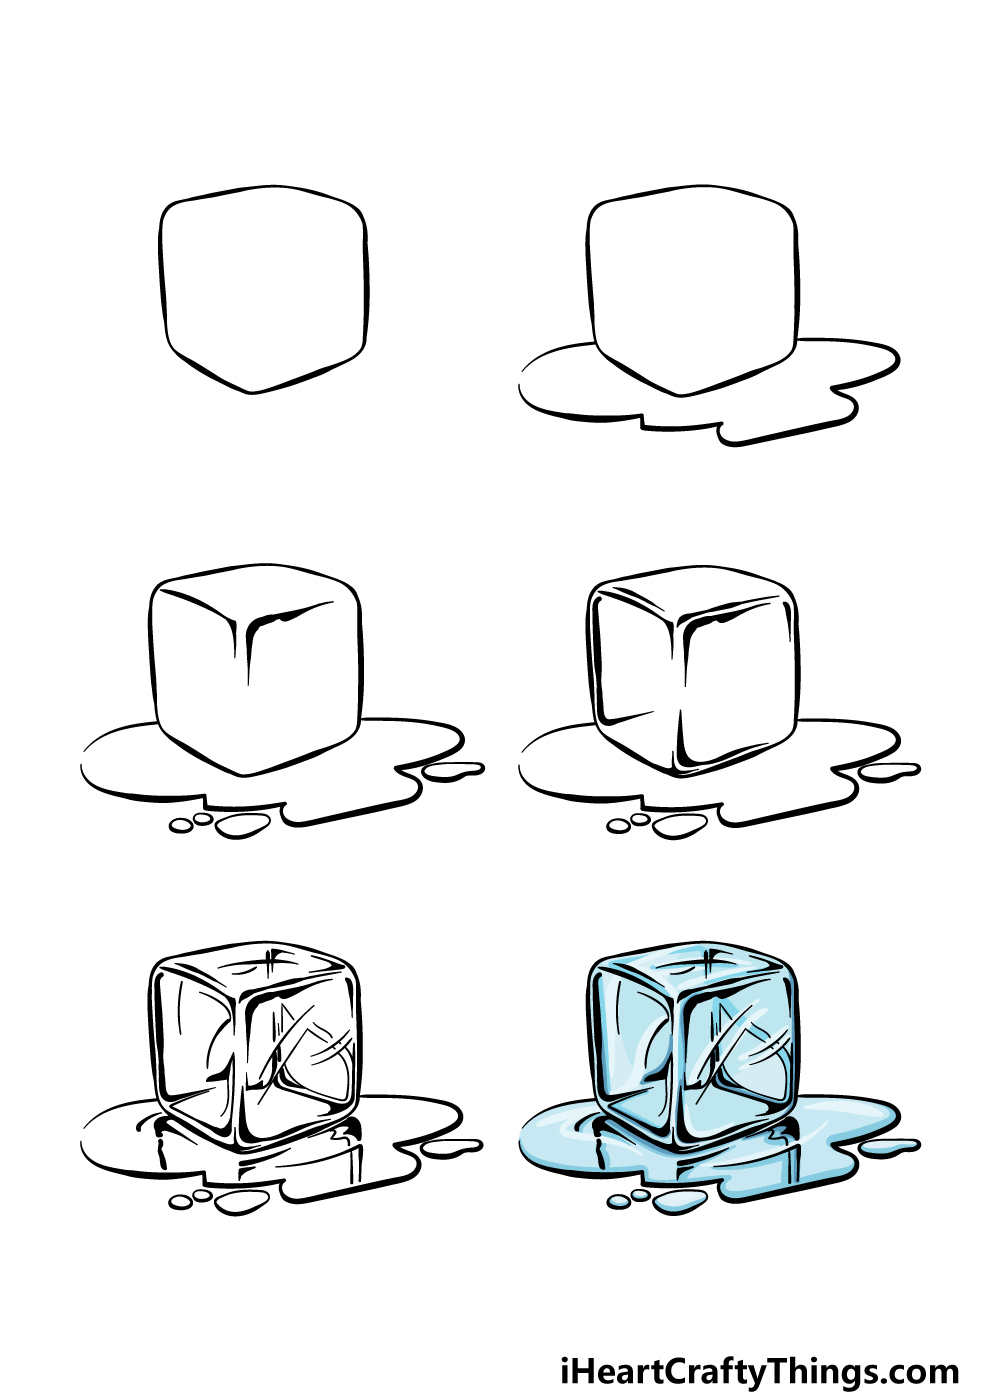 how to draw an ice cube in 6 steps